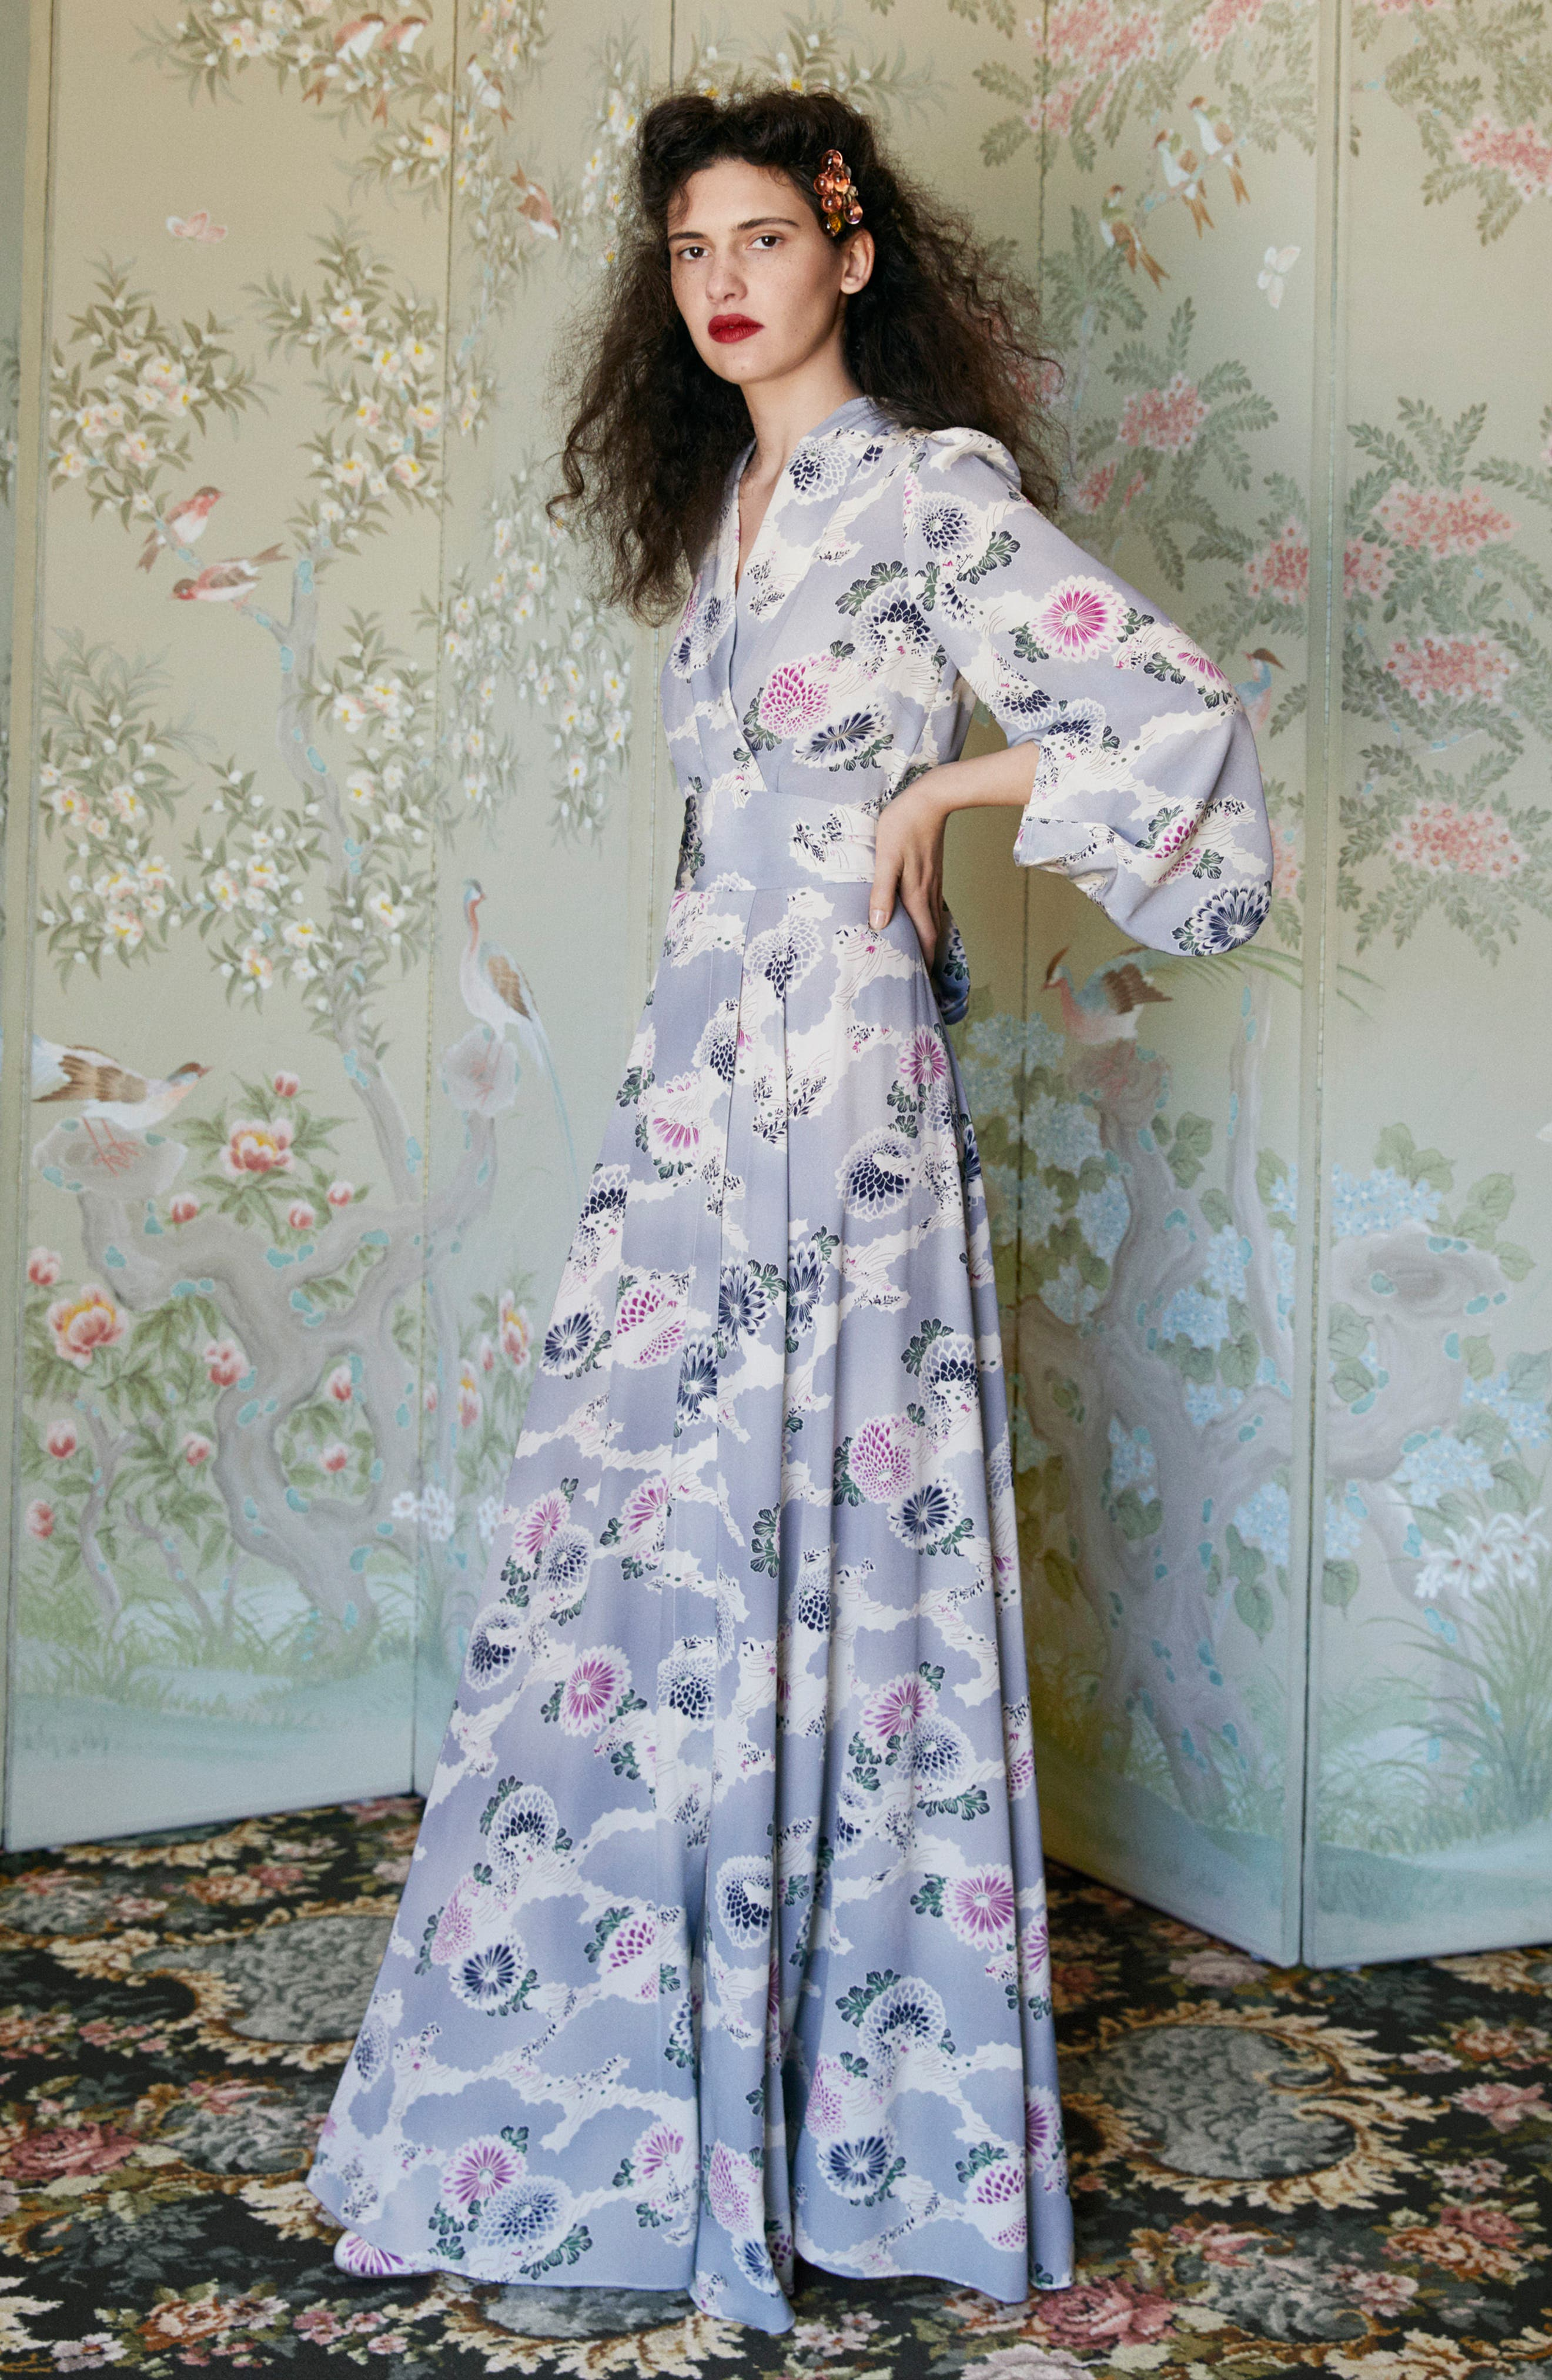 Floral Print Silk Crêpe de Chine Maxi Wrap Dress,                             Alternate thumbnail 7, color,                             020